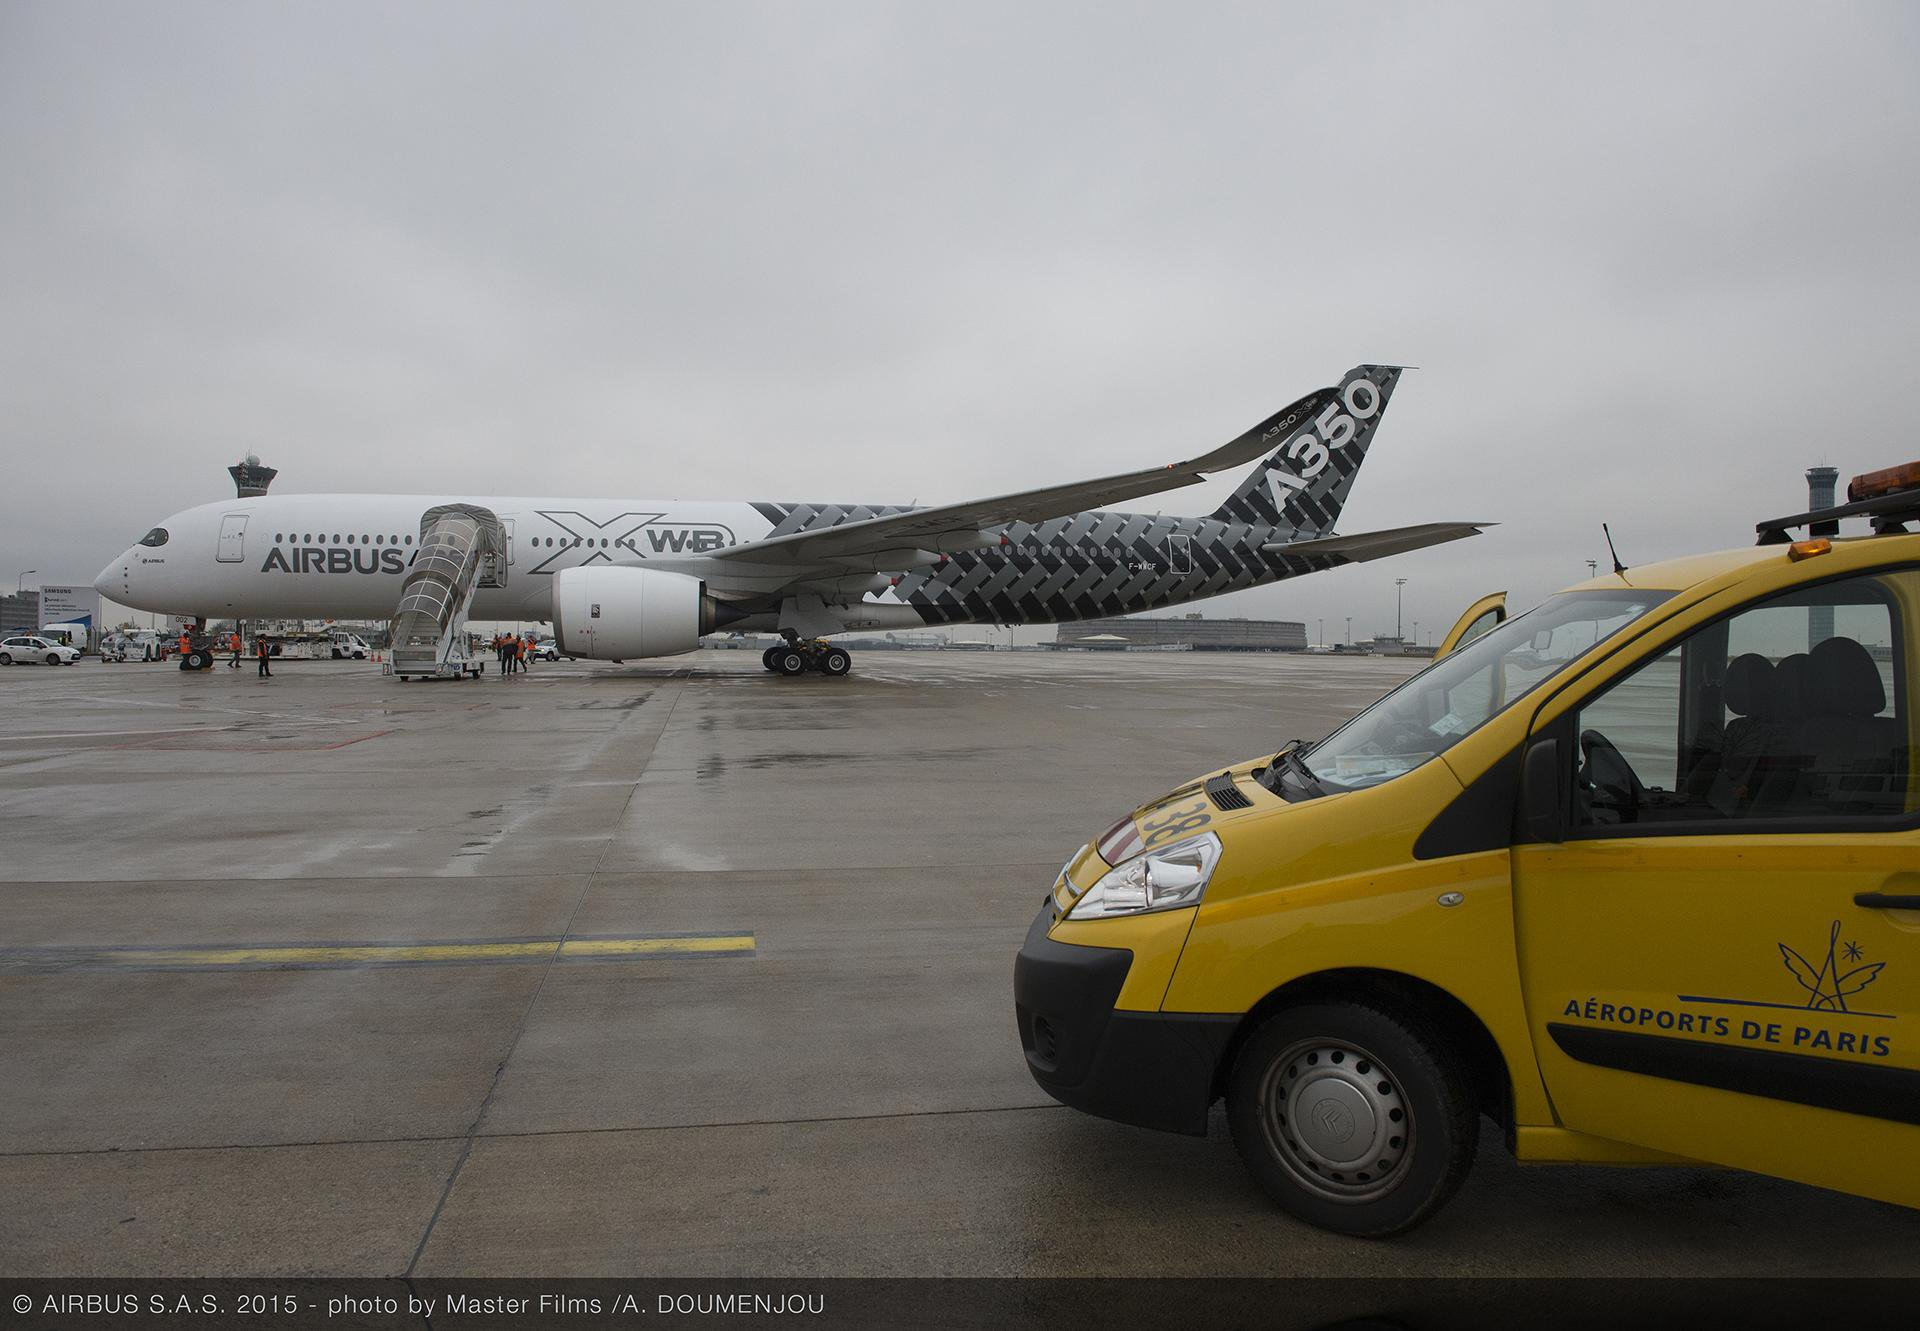 "The Airbus A350 XWB jetliner made its ""premiere"" in Paris on 26 February 2015, landing for the first time at Paris Charles de Gaulle airport"